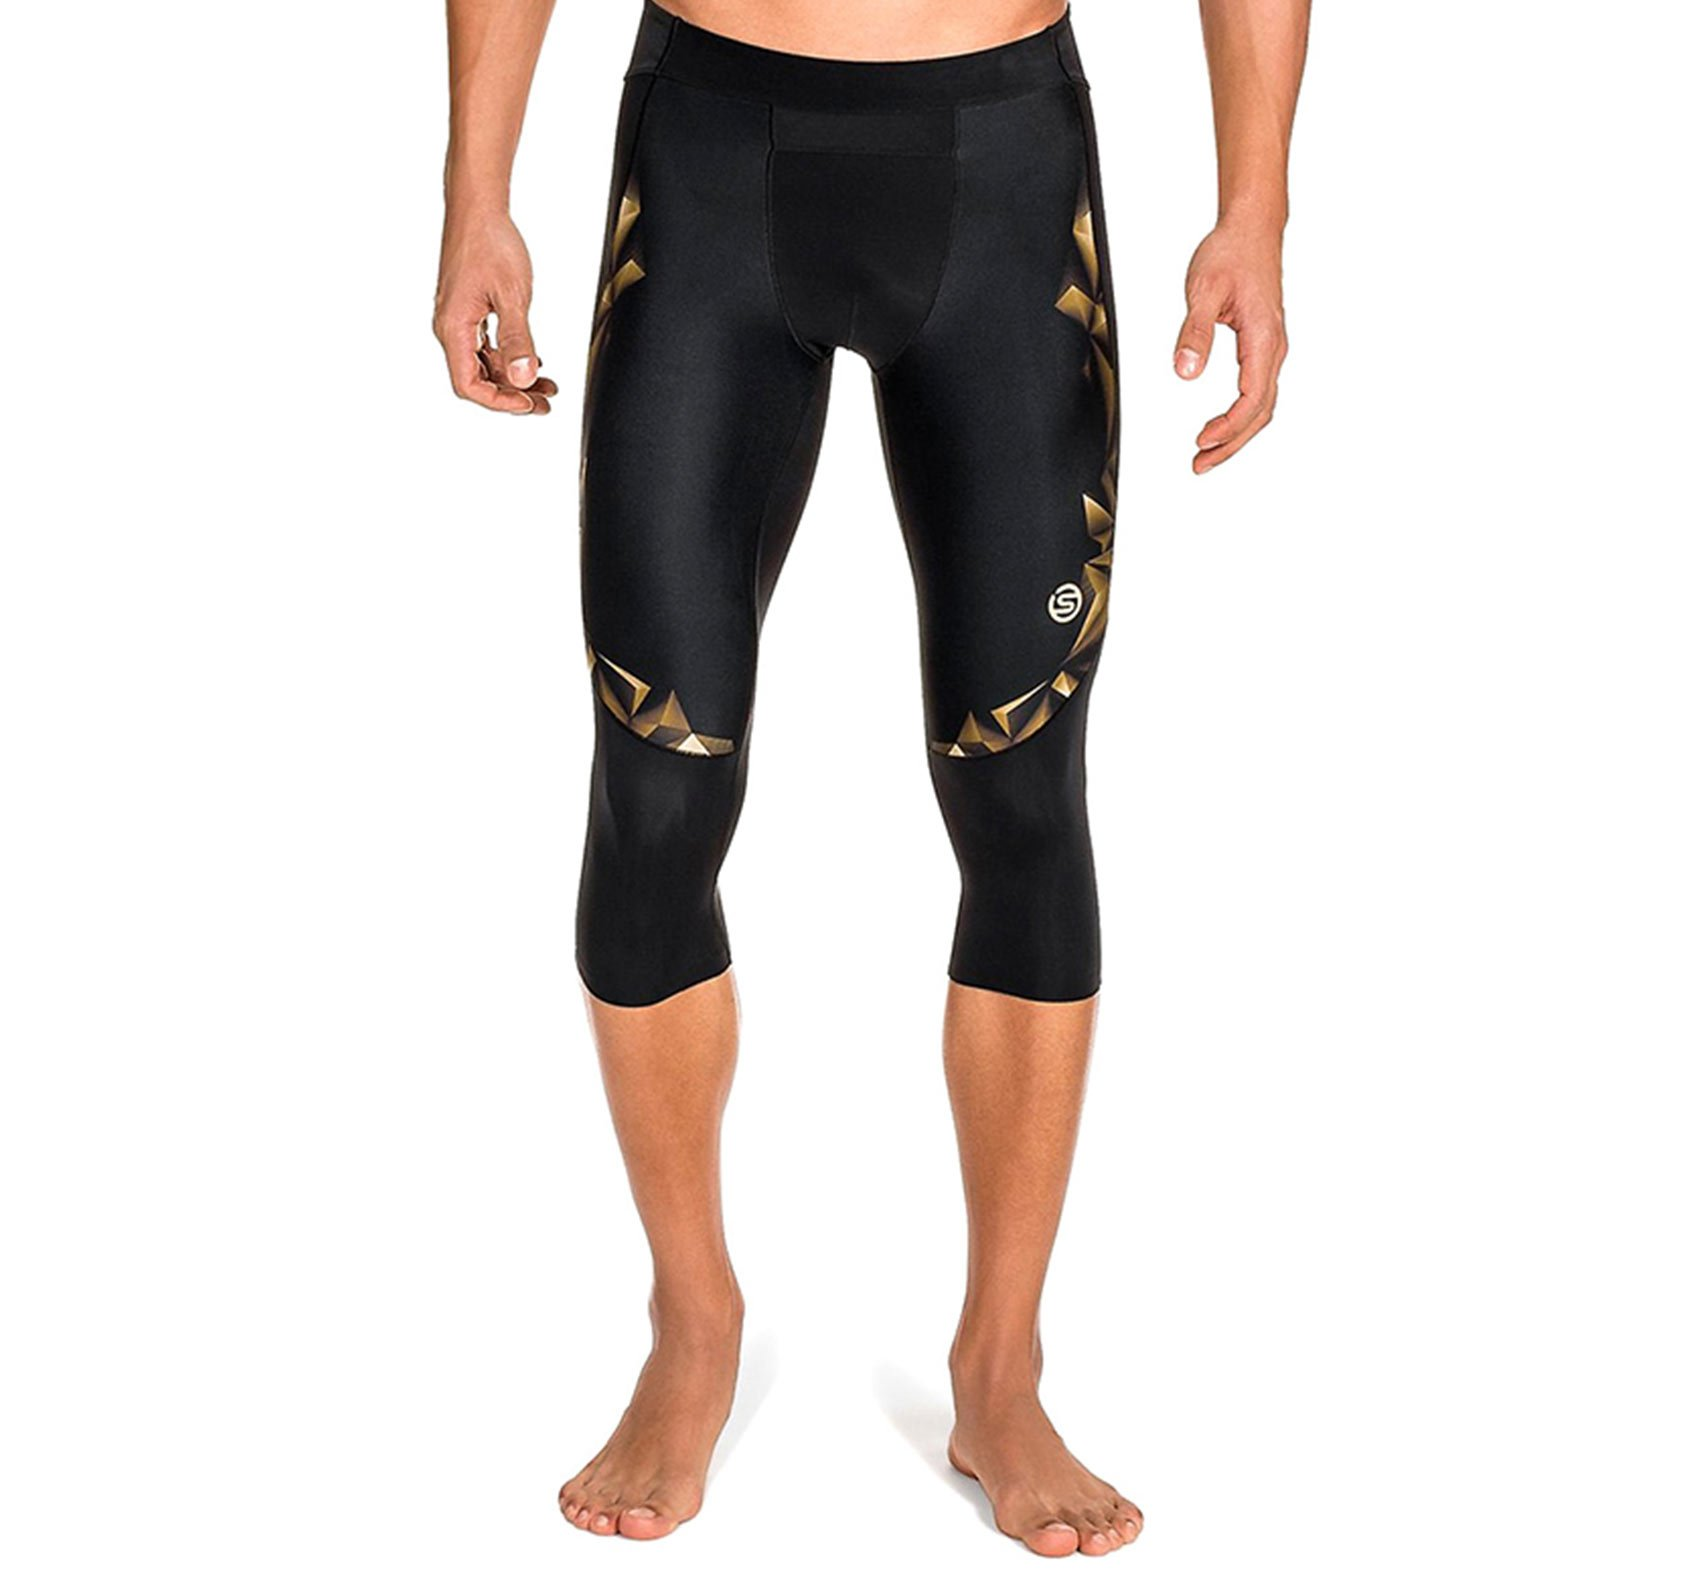 Skins Men's A400 Compression 3/4 Tights, Black/Gold, Small